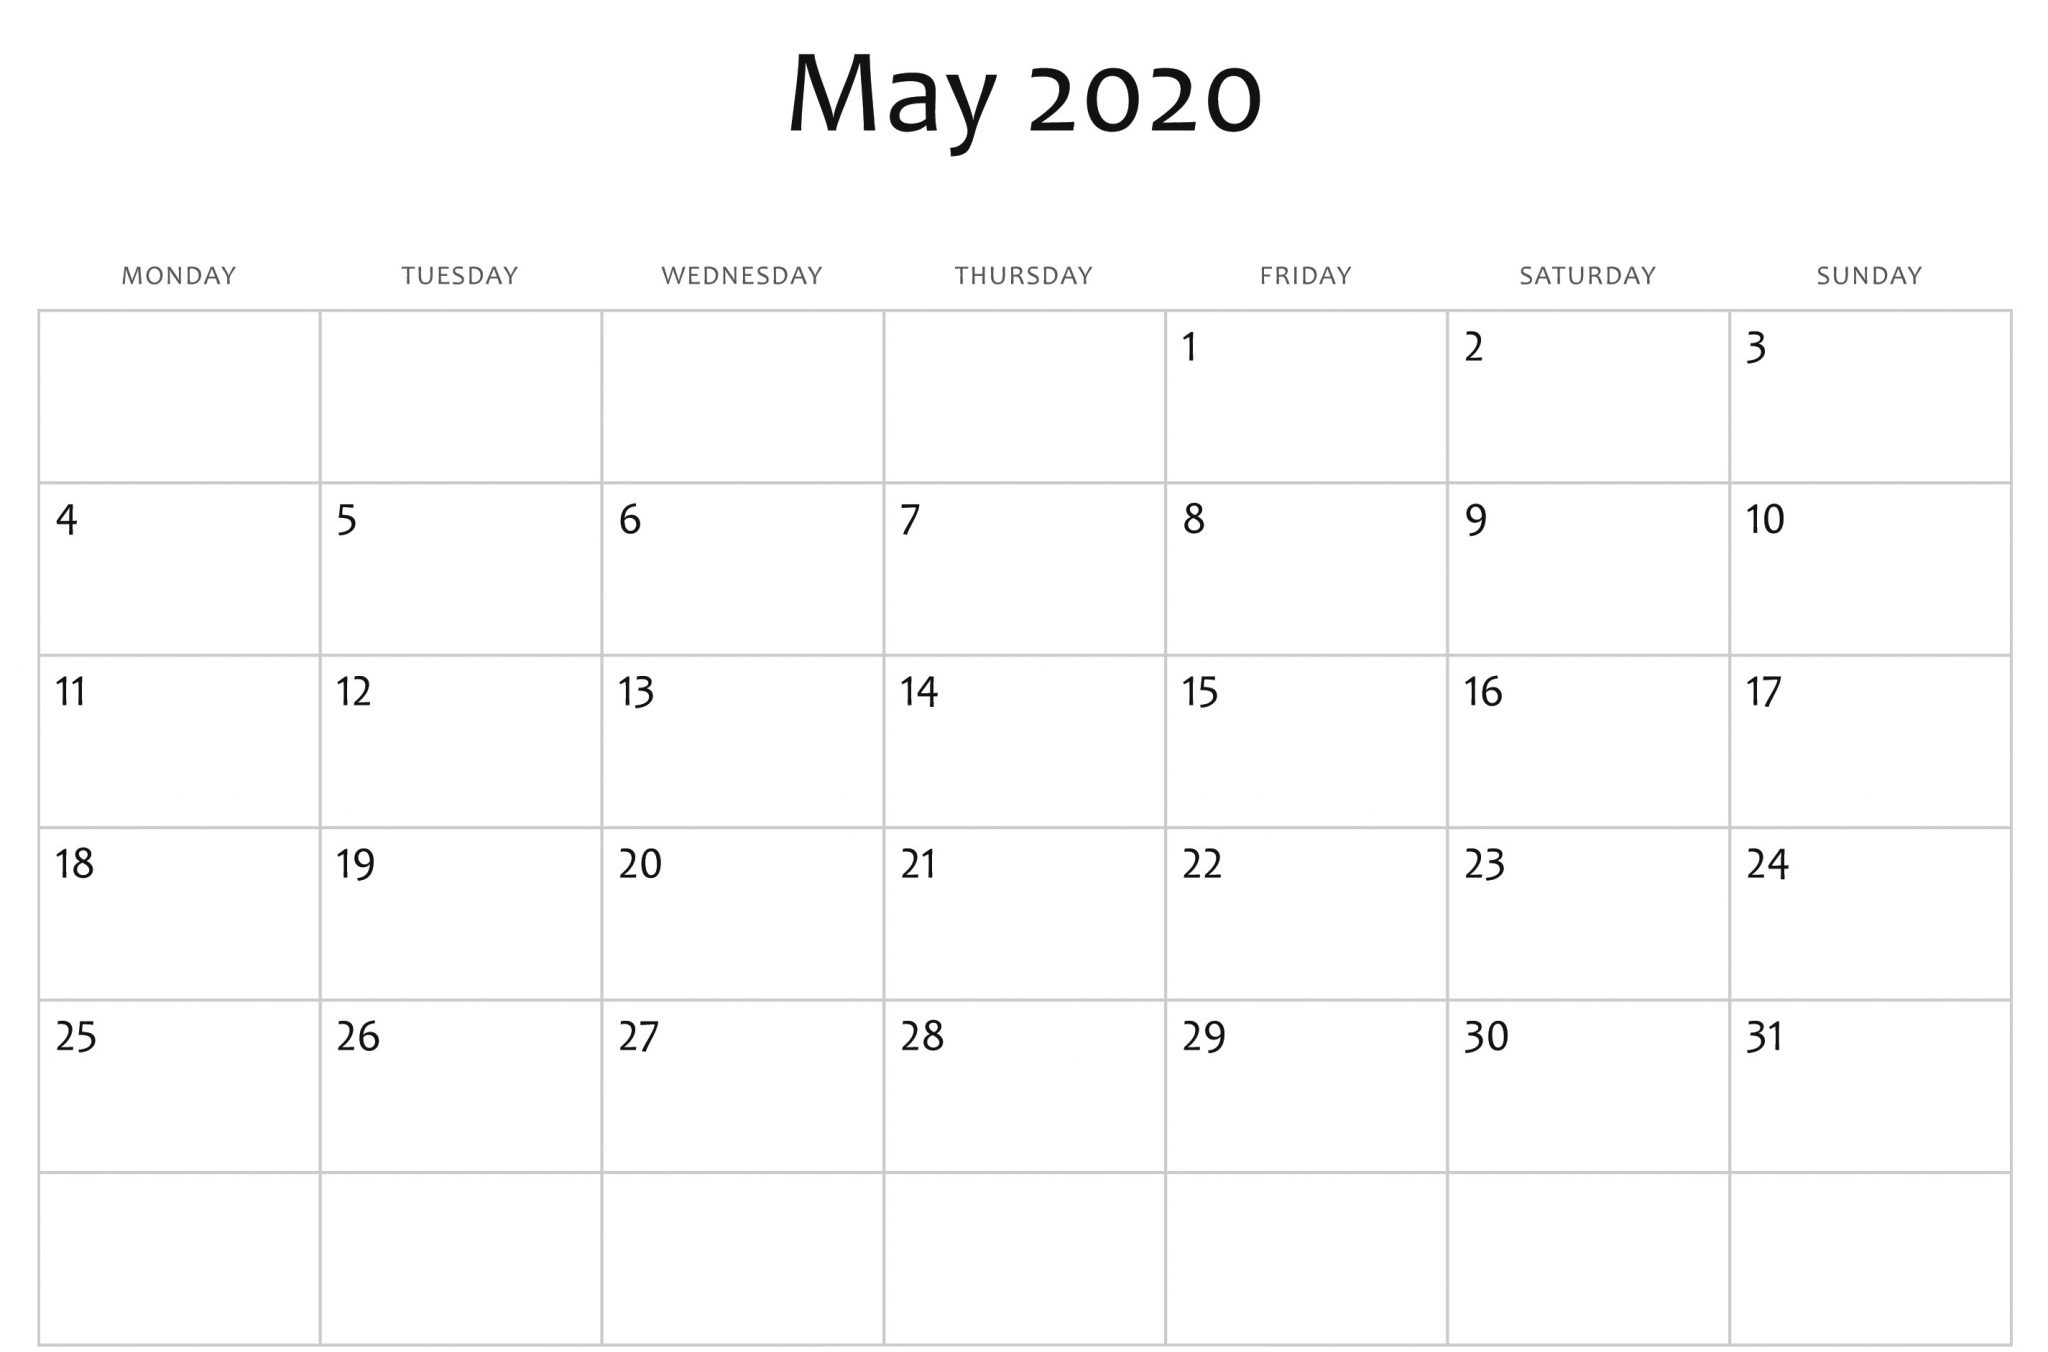 May 2020 Calendar Template Word, Pdf, Excel Format